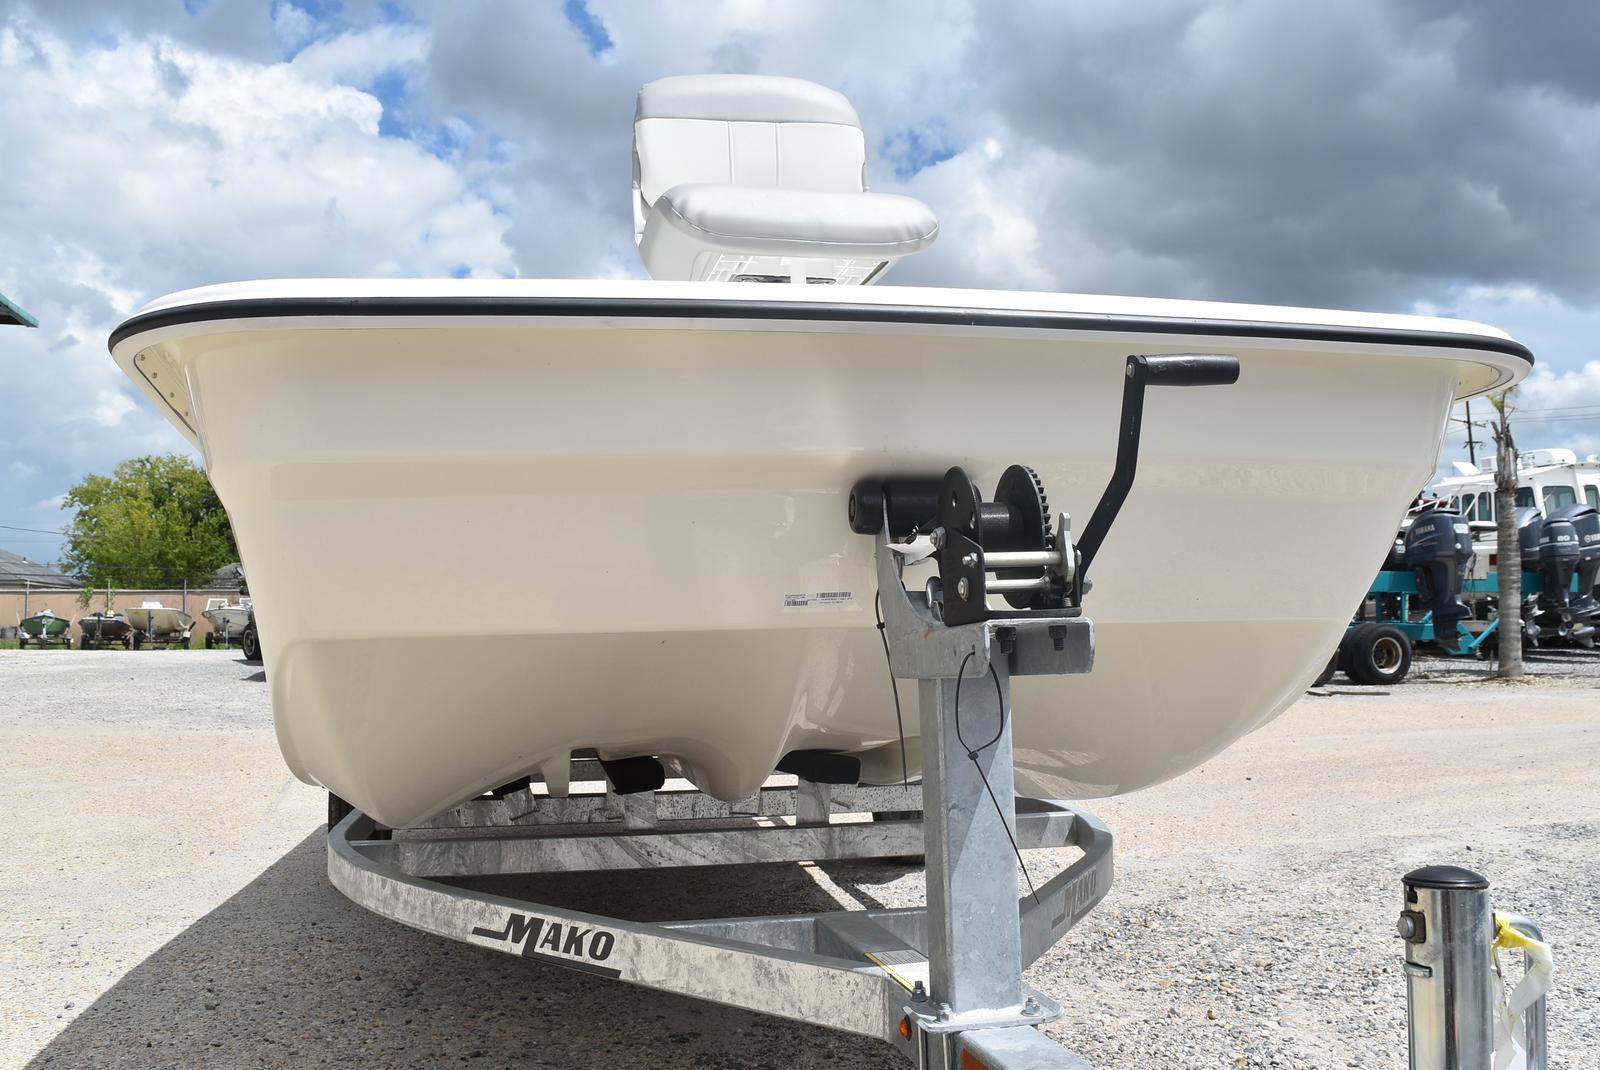 2020 Mako boat for sale, model of the boat is Pro Skiff 17, 75 ELPT & Image # 367 of 702